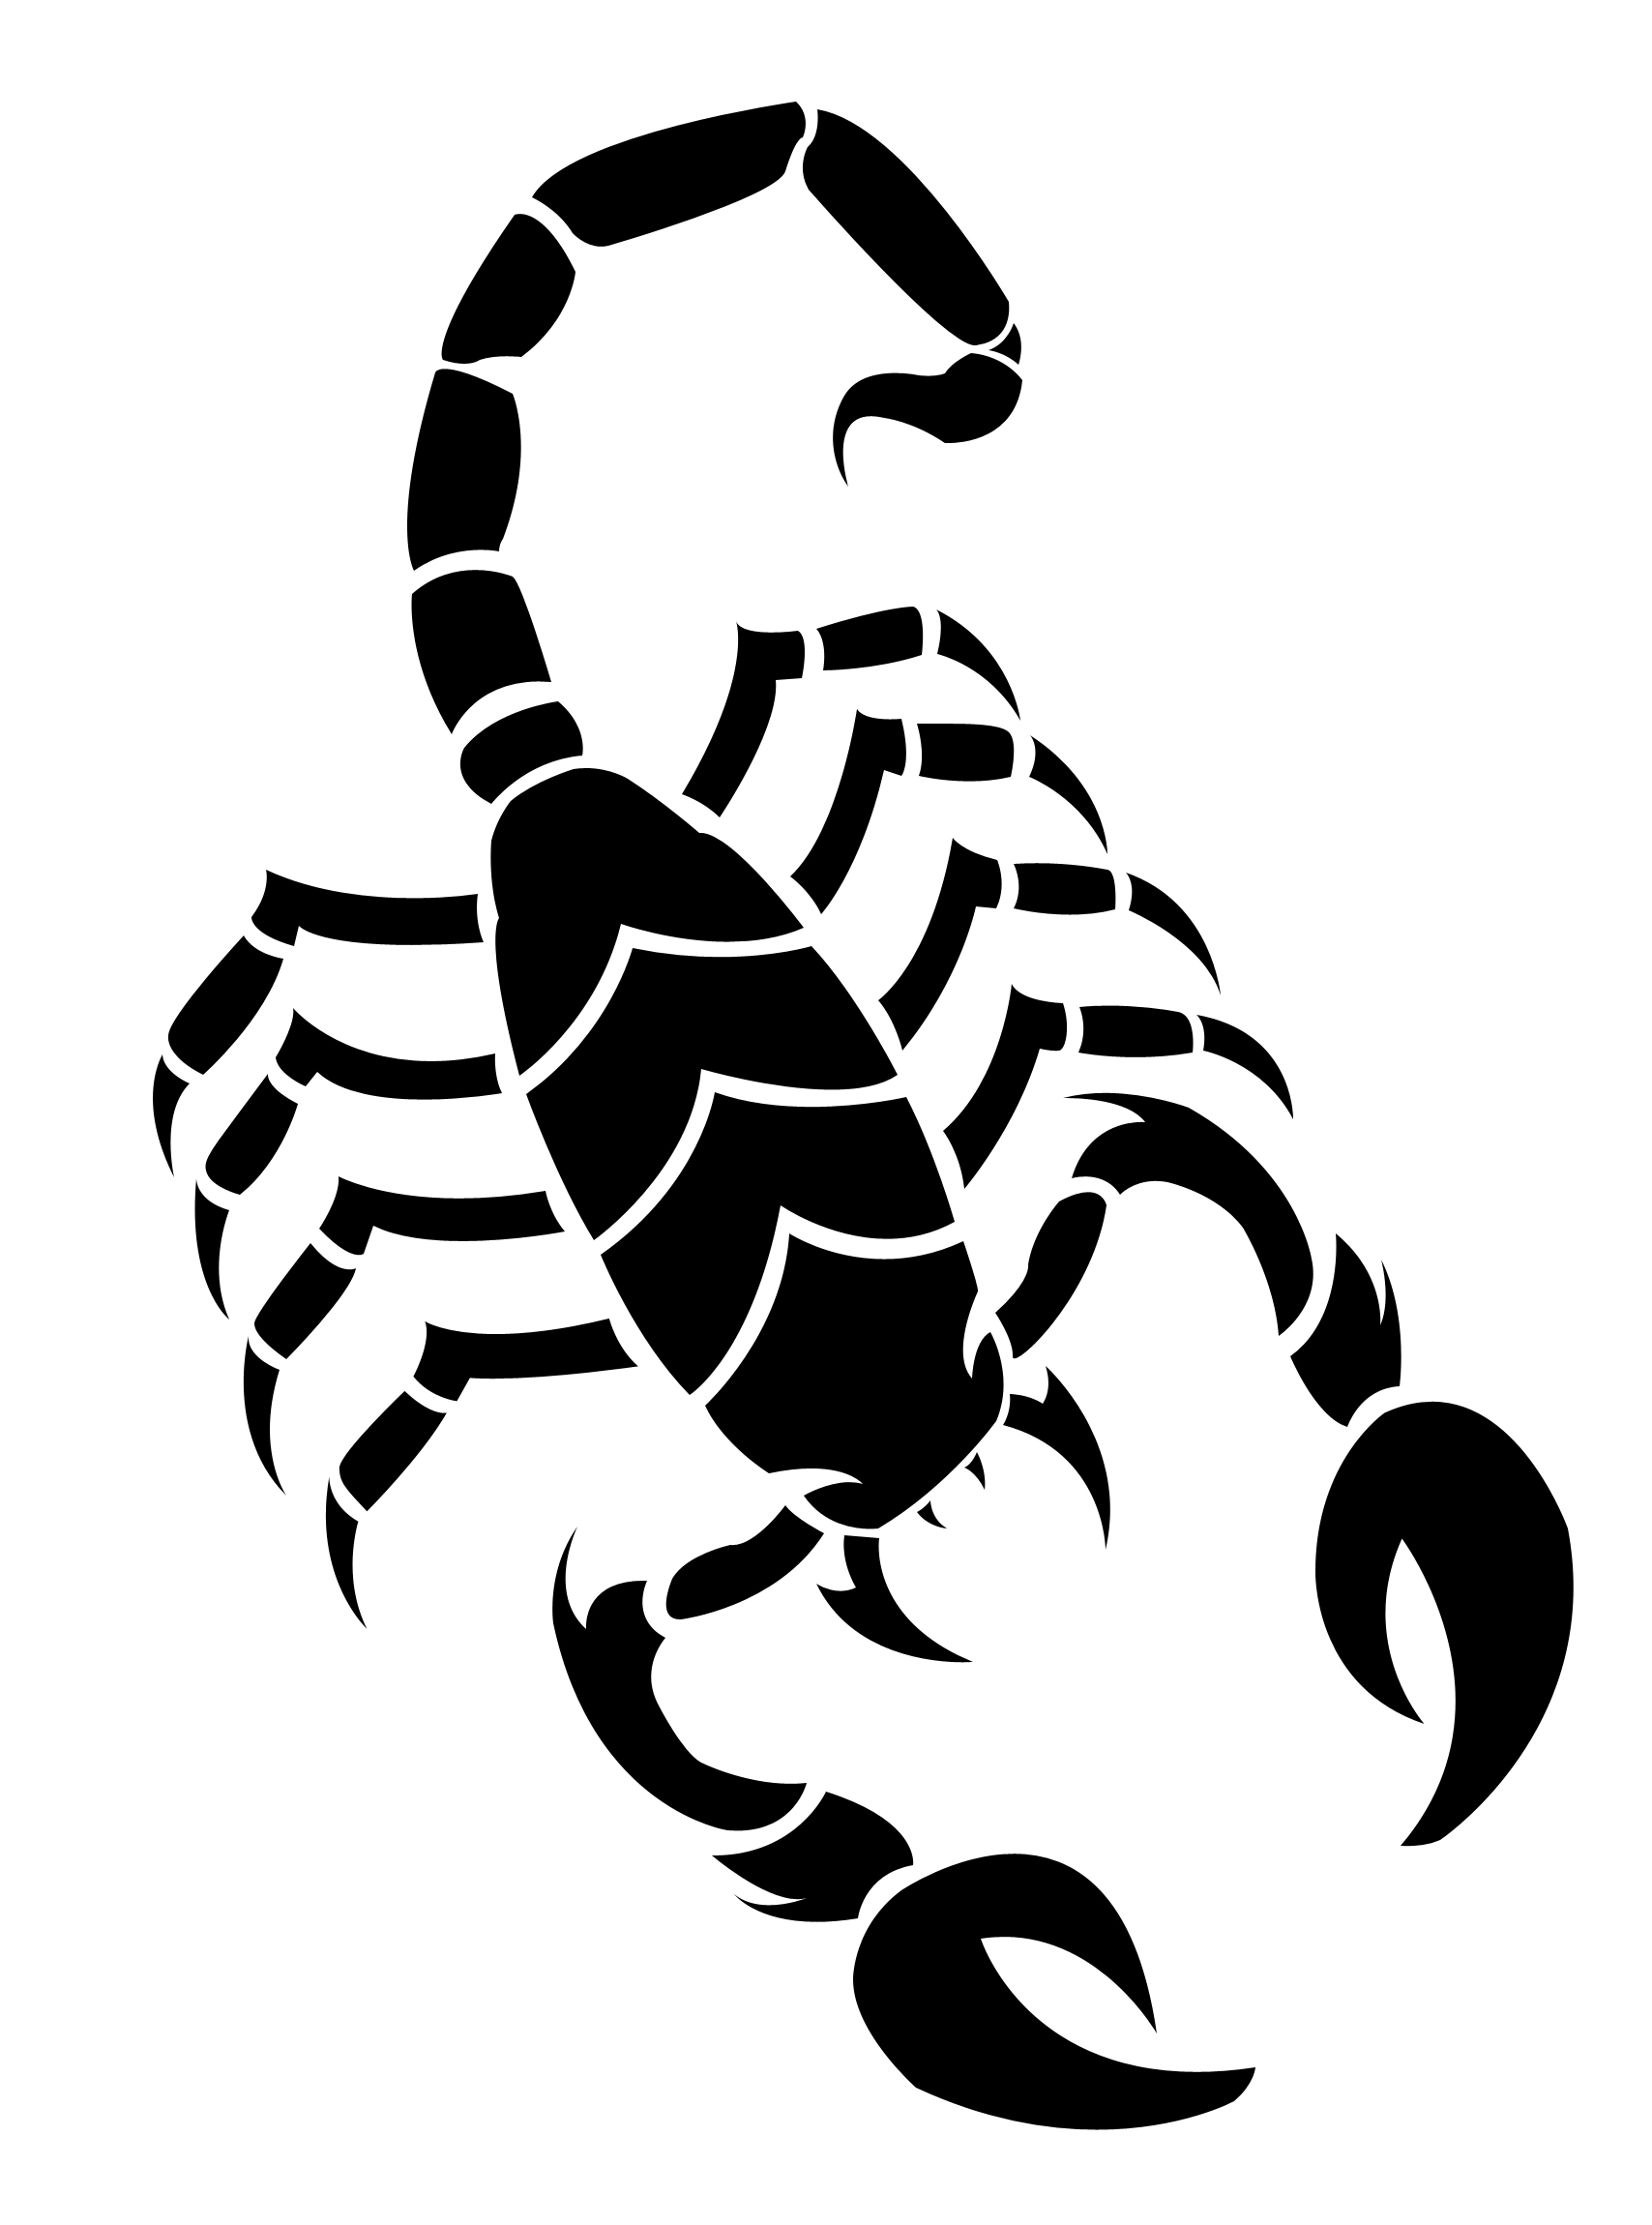 Scorpion clipart easy. How to draw scorpions